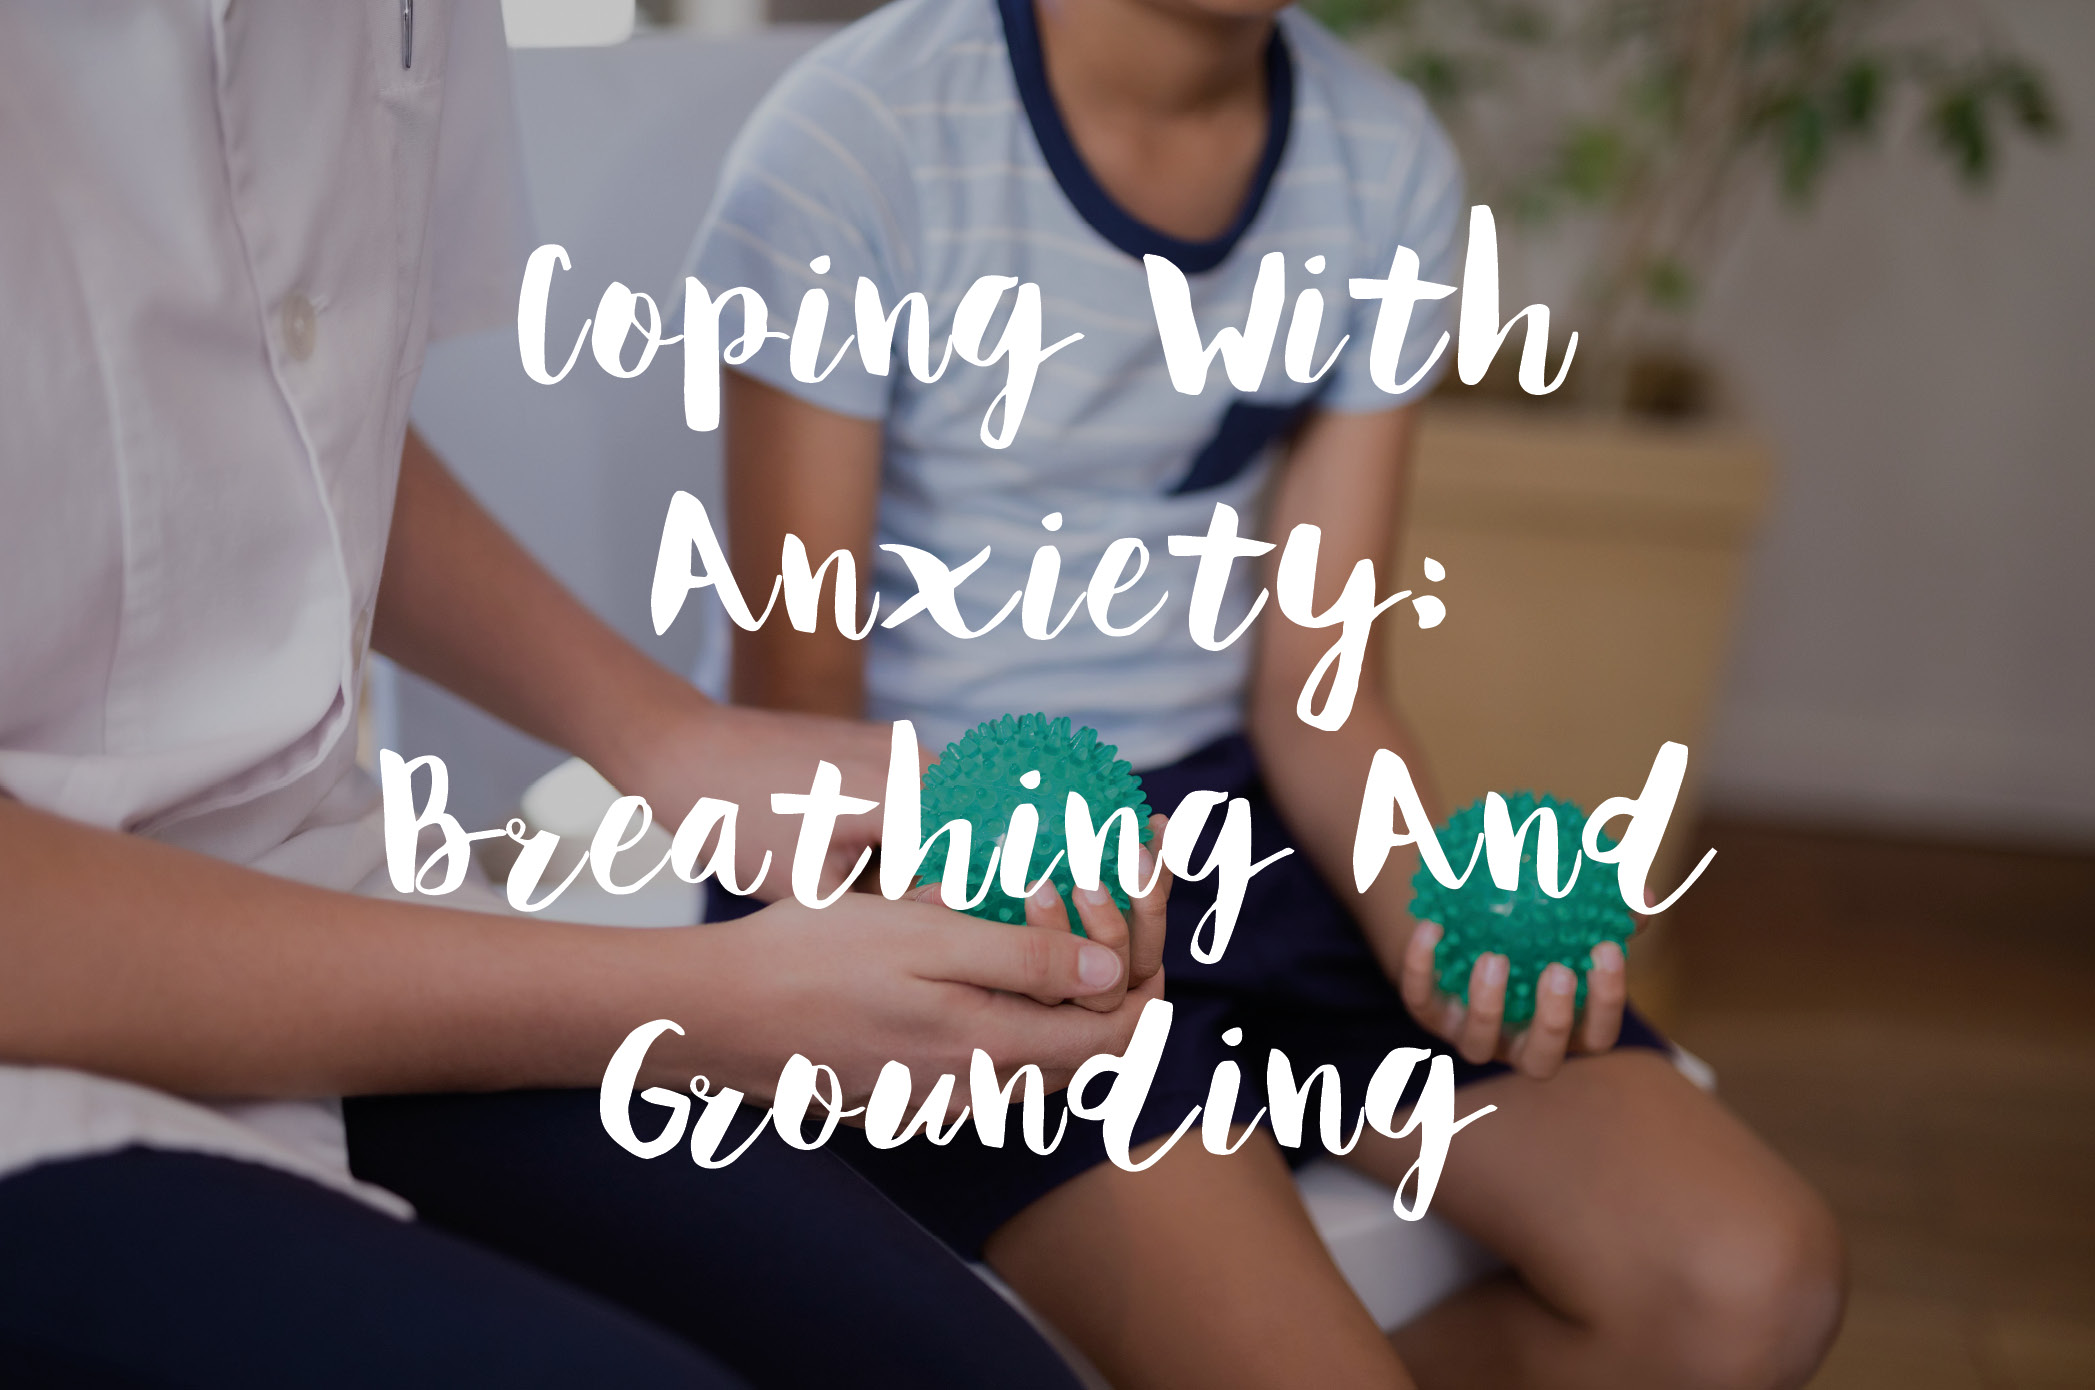 Coping With Anxiety: Breathing And Grounding